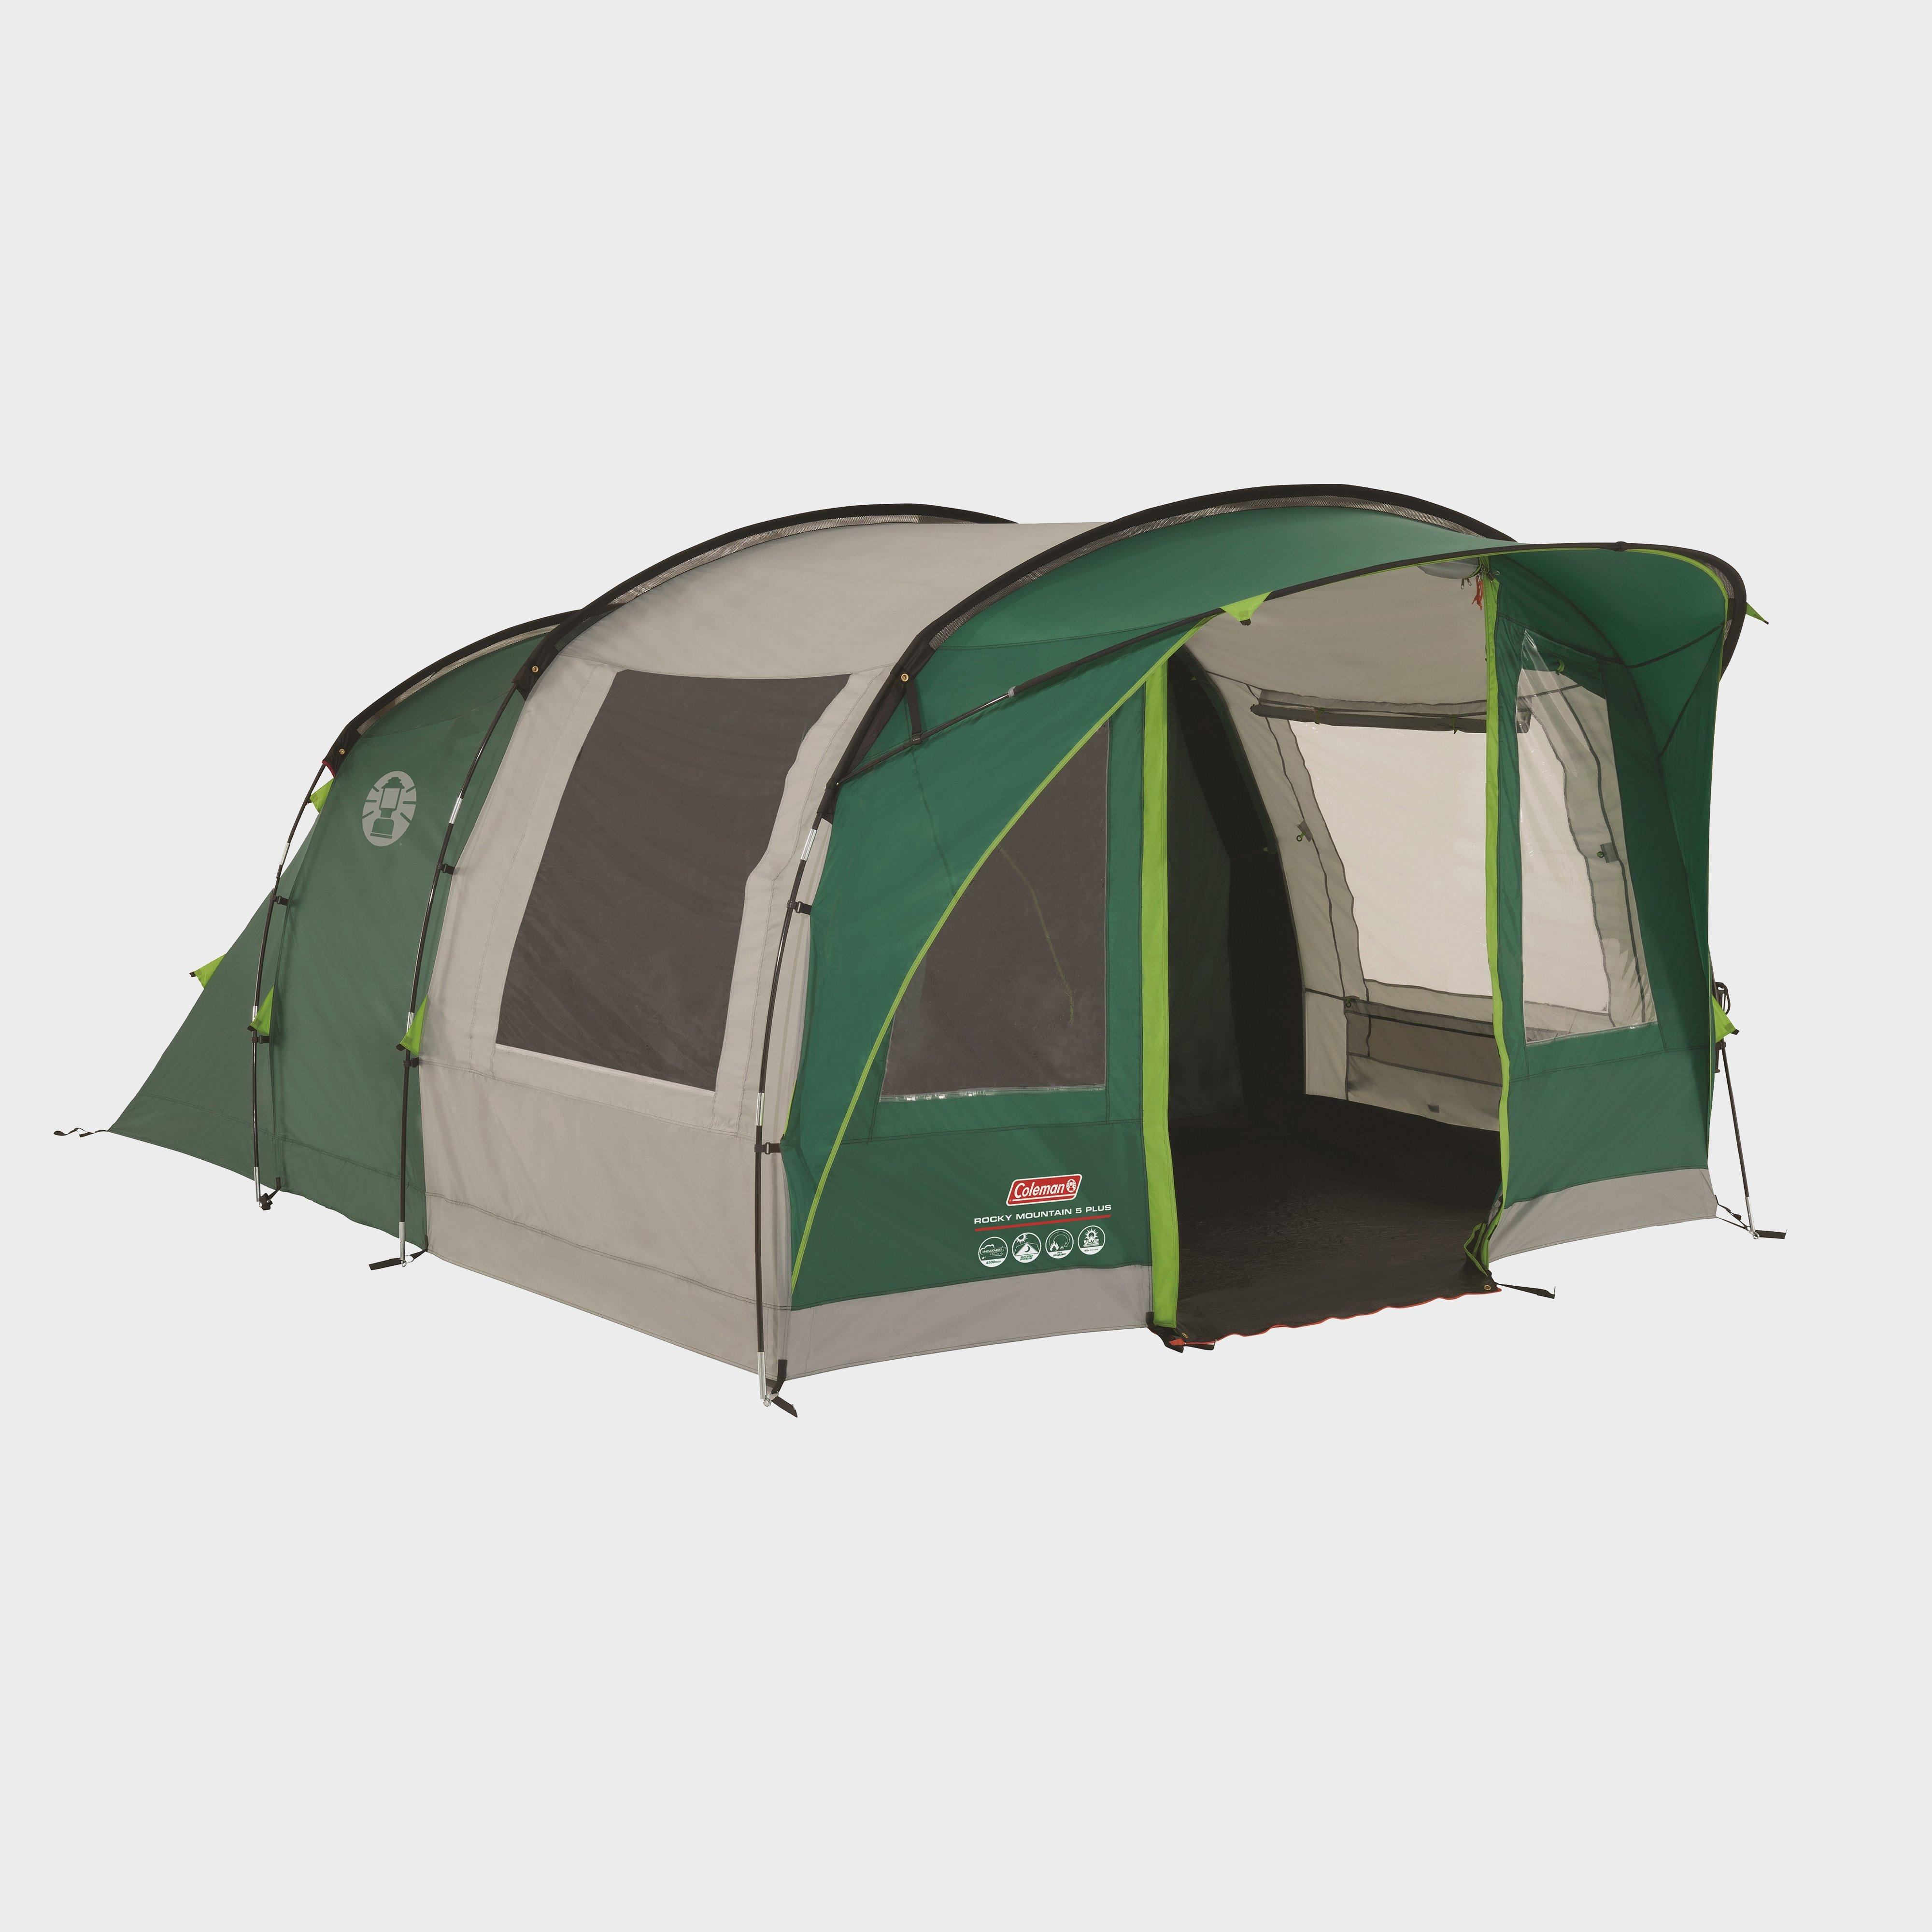 Coleman Coleman Rocky Mountain 5 Plus Tent - Green, Green